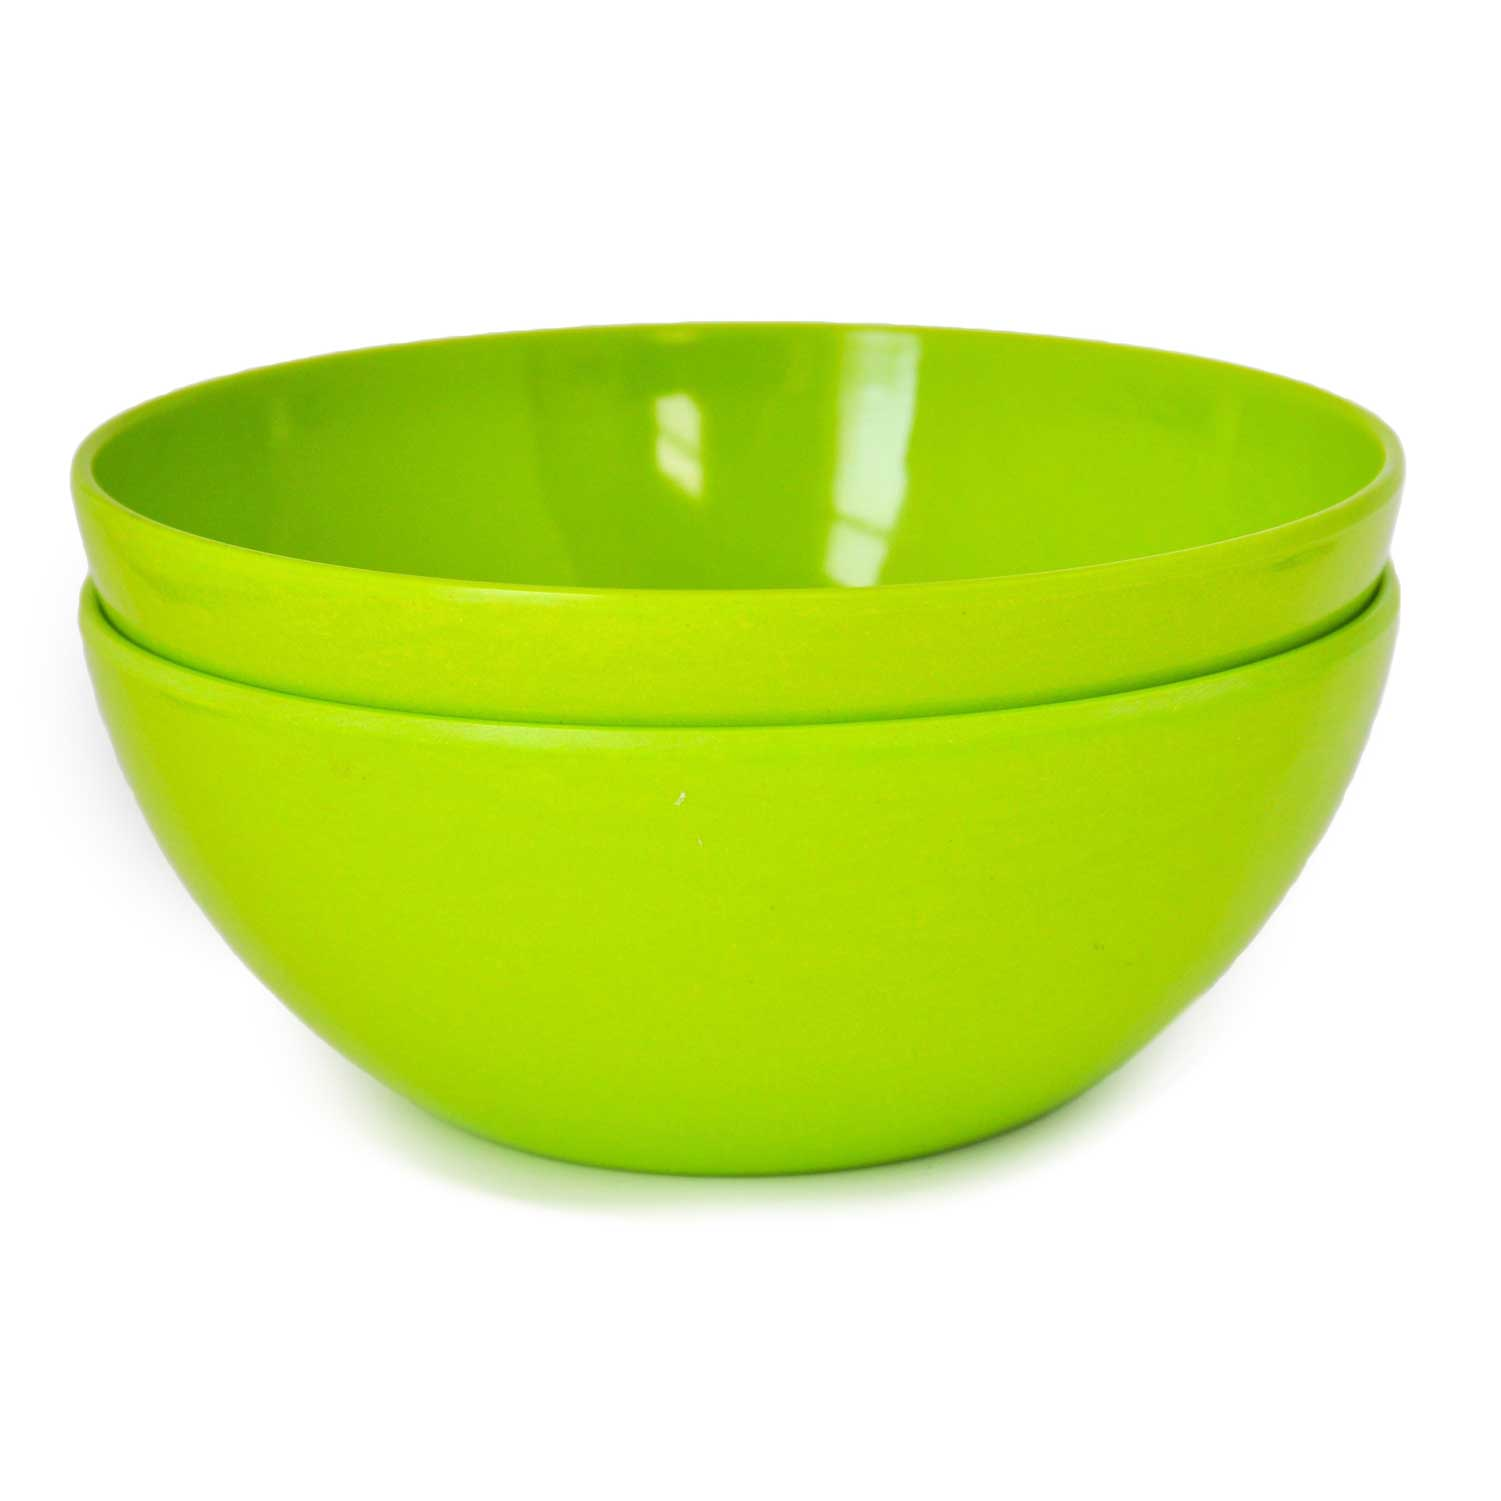 yumi-502-nature-green-natural-bamboo-salad-pasta-and-soup-bowls-set-of-2.jpg